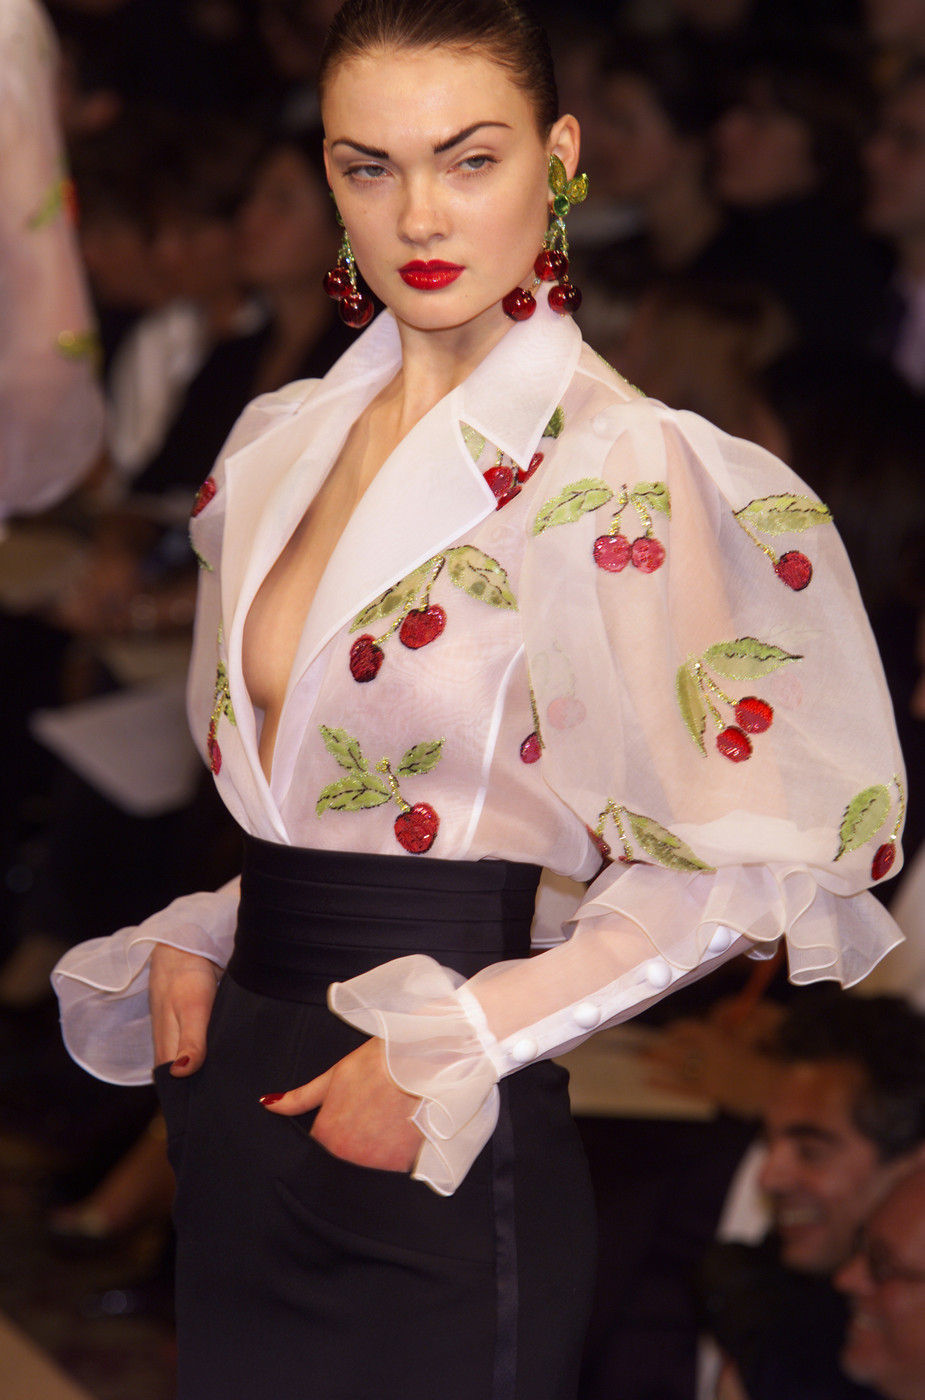 Yves Saint Laurent Spring/Summer 2001 couture collection